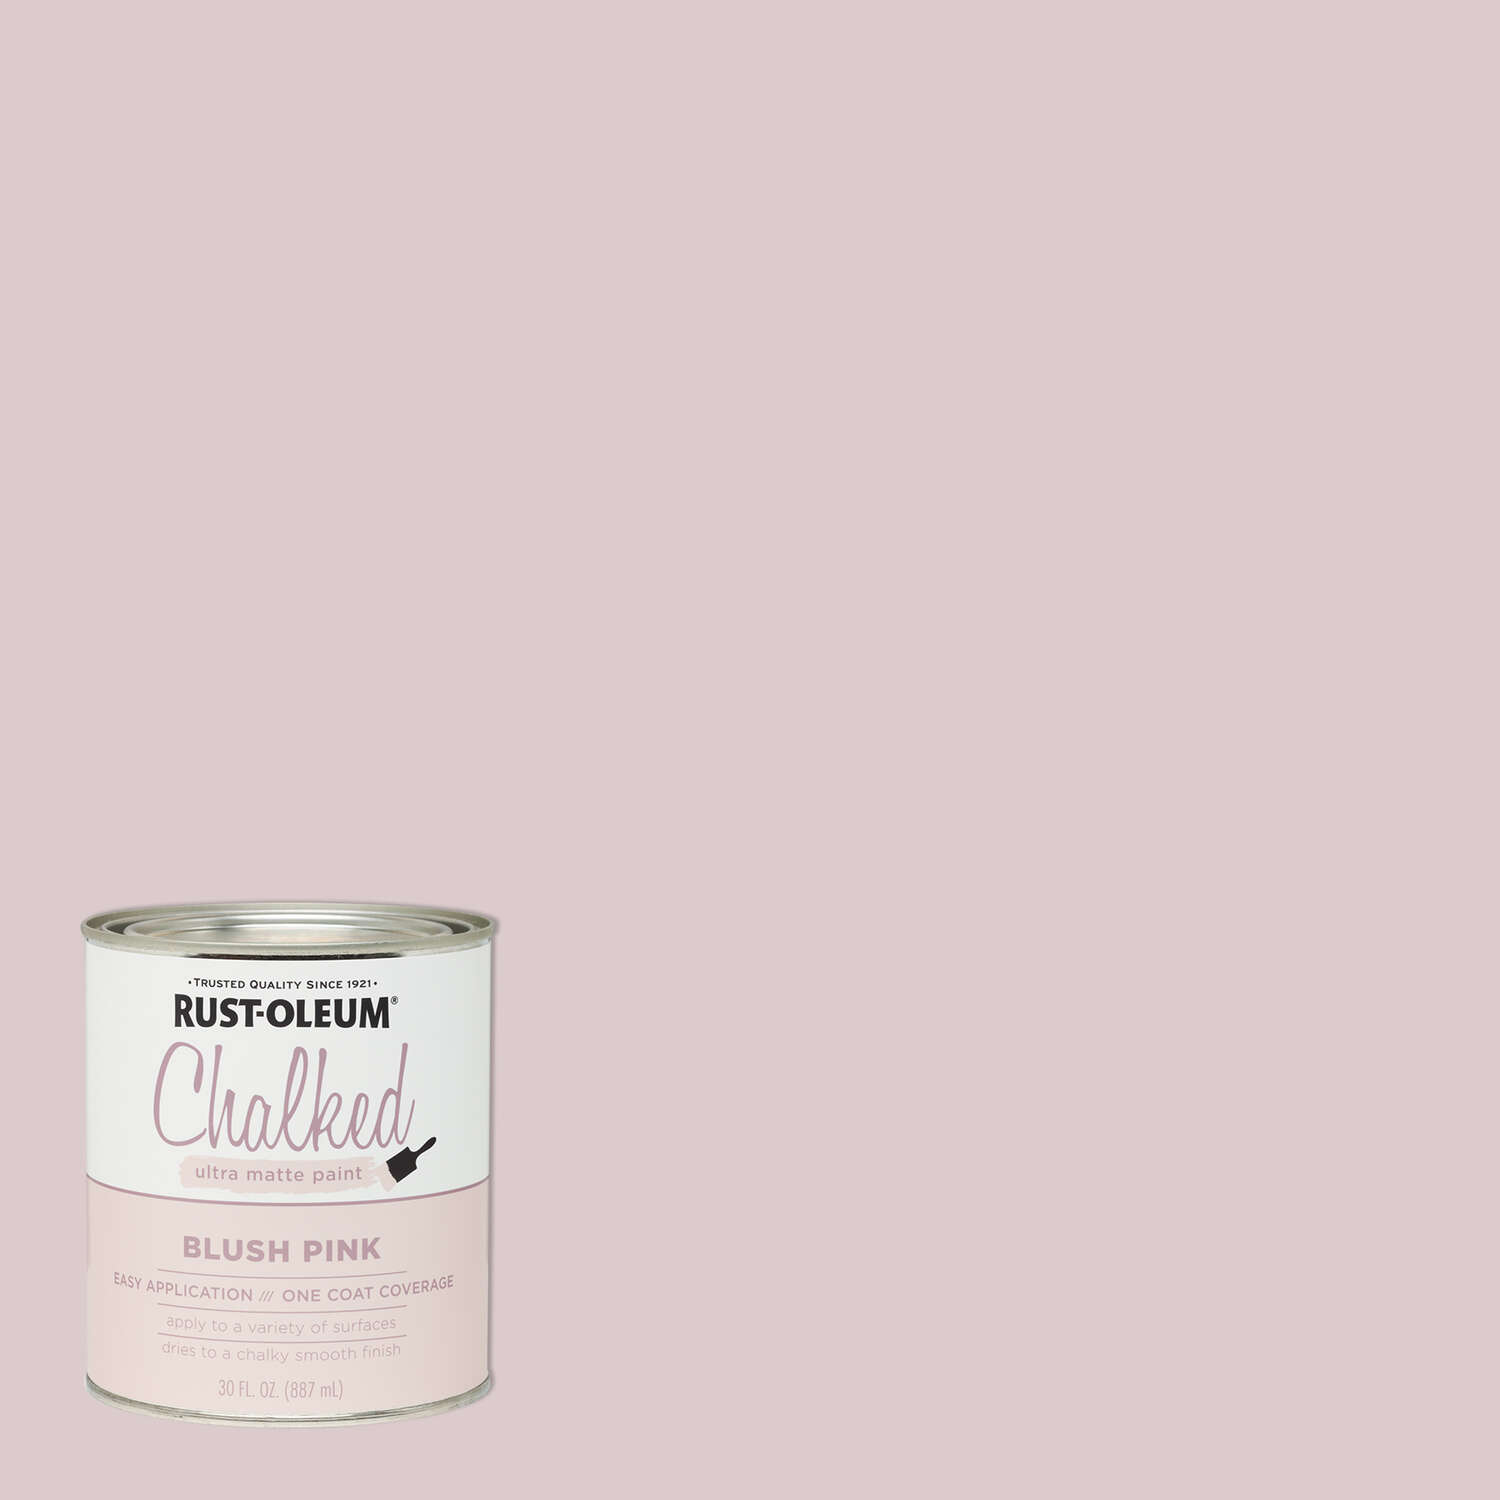 Rust-Oleum  Chalked  Ultra Matte  Blush Pink  Water-Based  Acrylic  Chalk Paint  30 oz.